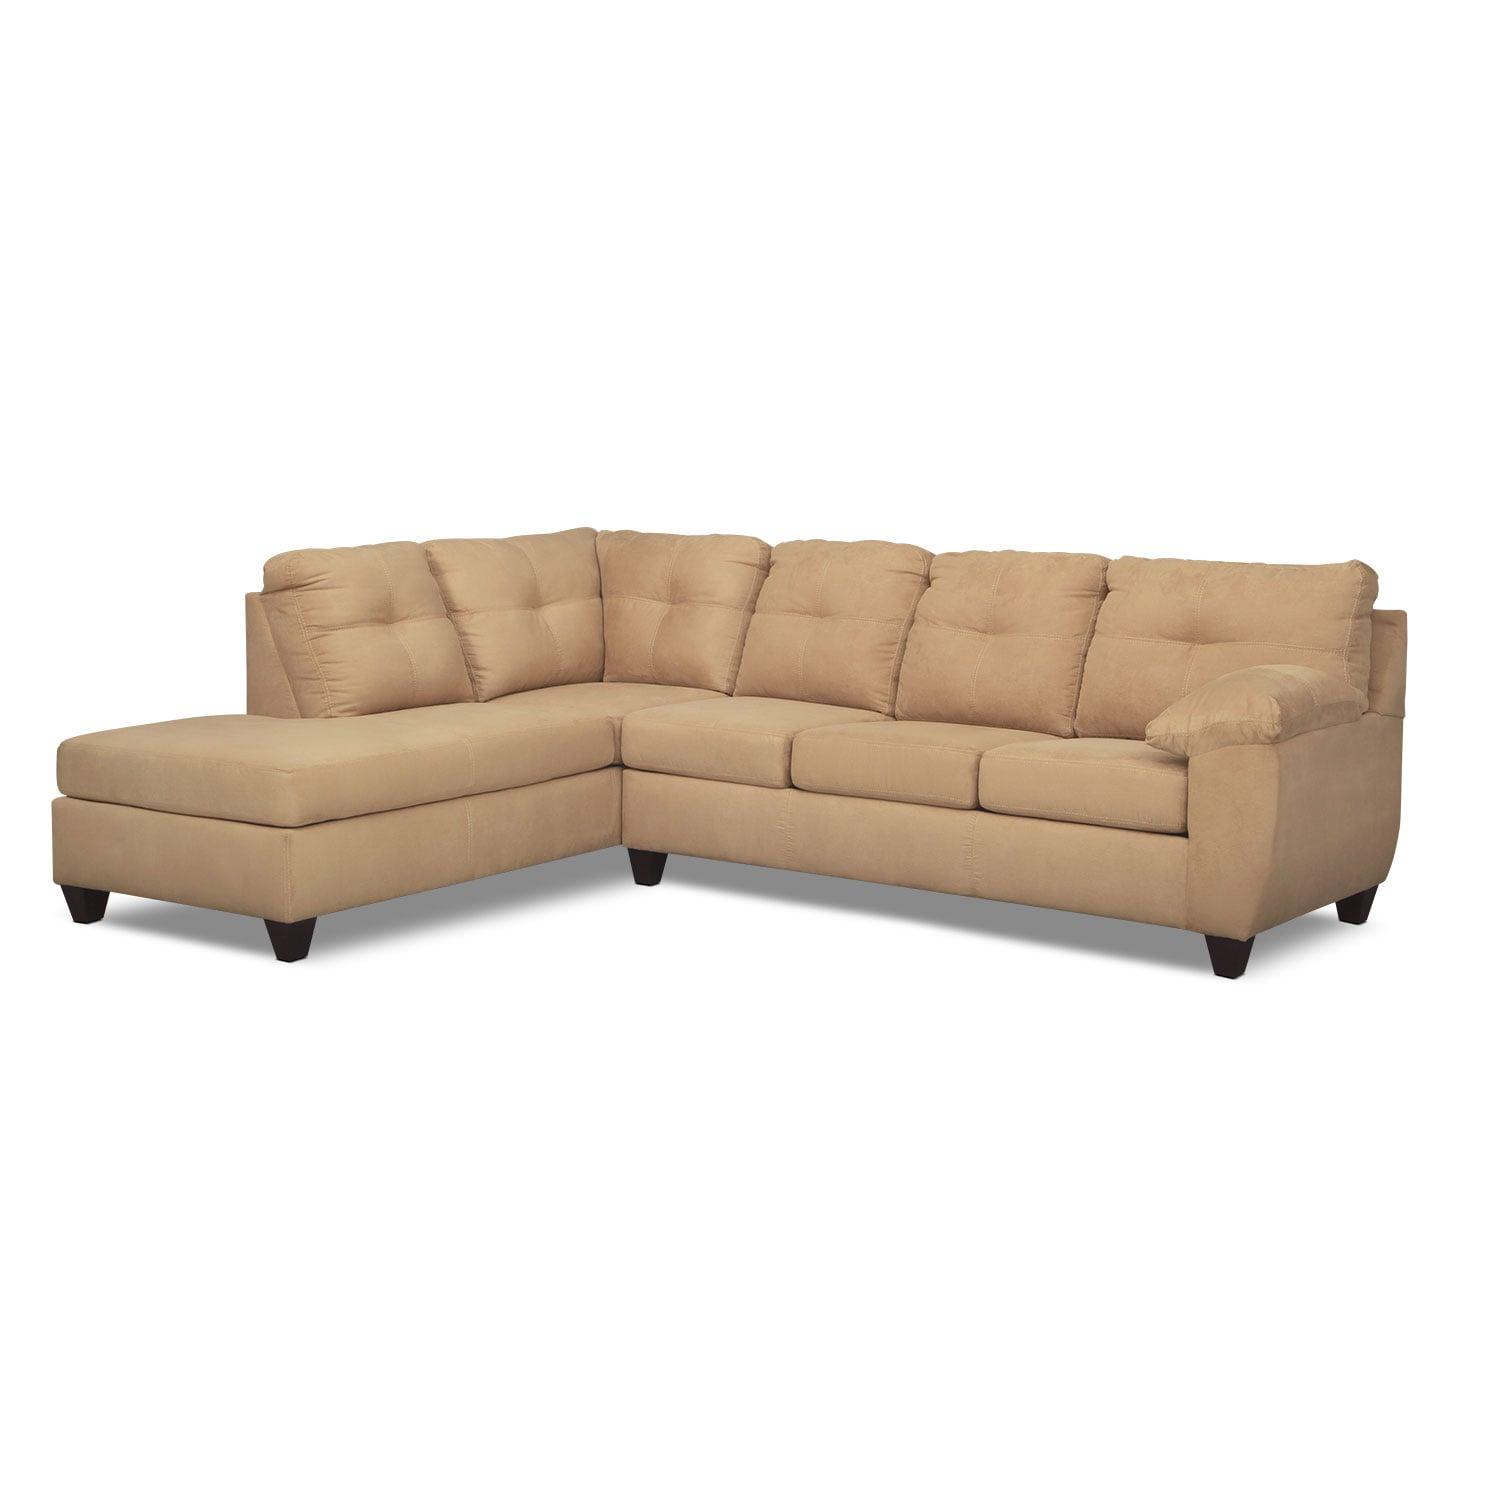 Rialto 2-Piece Sectional with Left-Facing Chaise - Camel